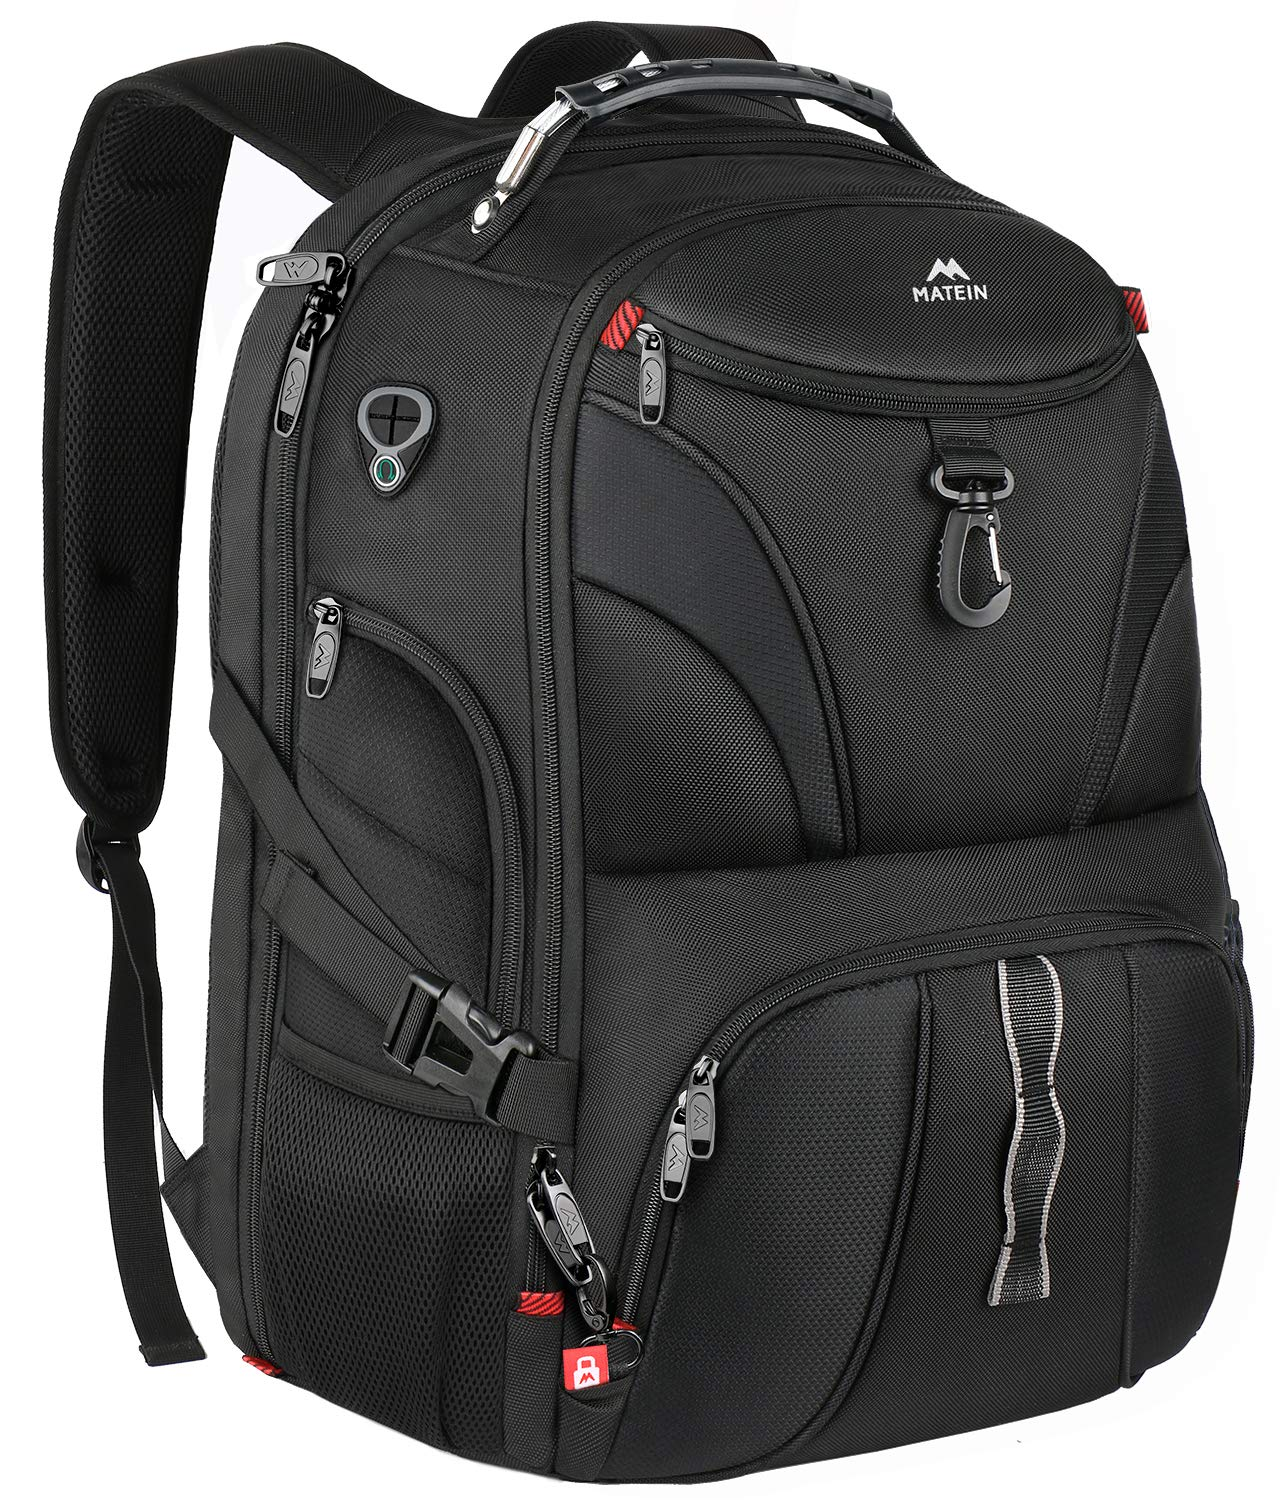 Matein Anti Theft Travel Backpack, Large School Laptop Backpack for Men Women with USB Port, TSA Friendly Water Resistant Big College Bag Business Computer Backpacks Fit 17 Inch Laptops, Black by MATEIN